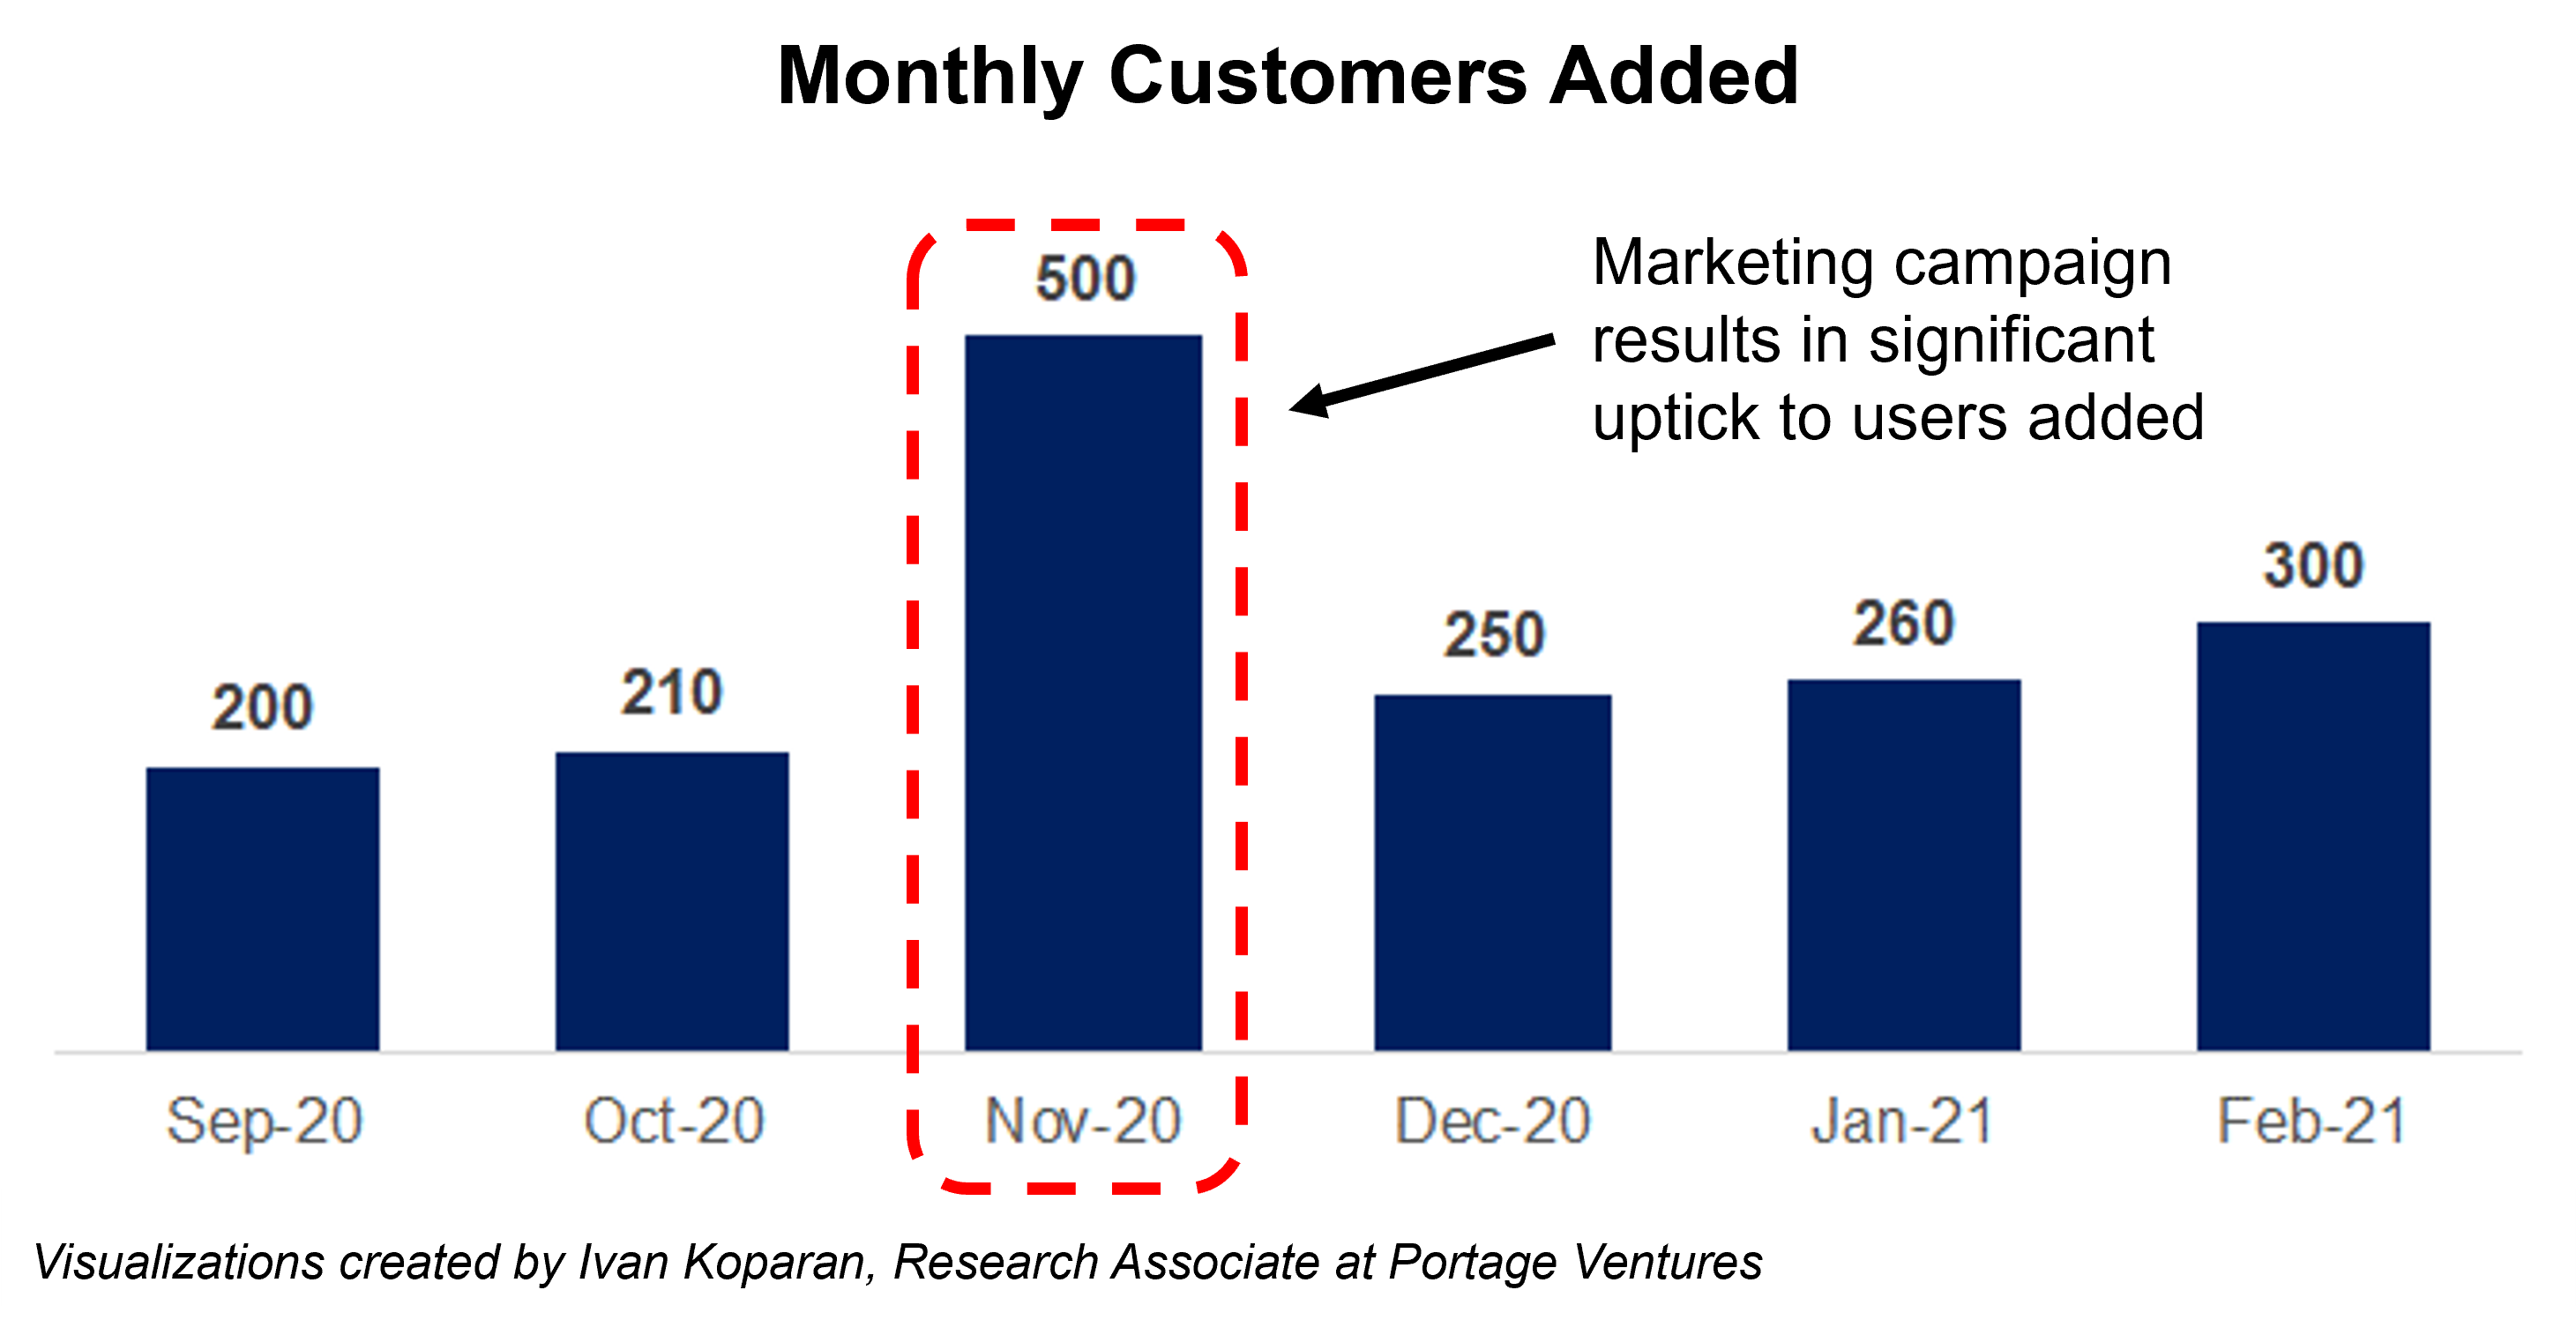 Marketing campaign results in significant uptick to users added